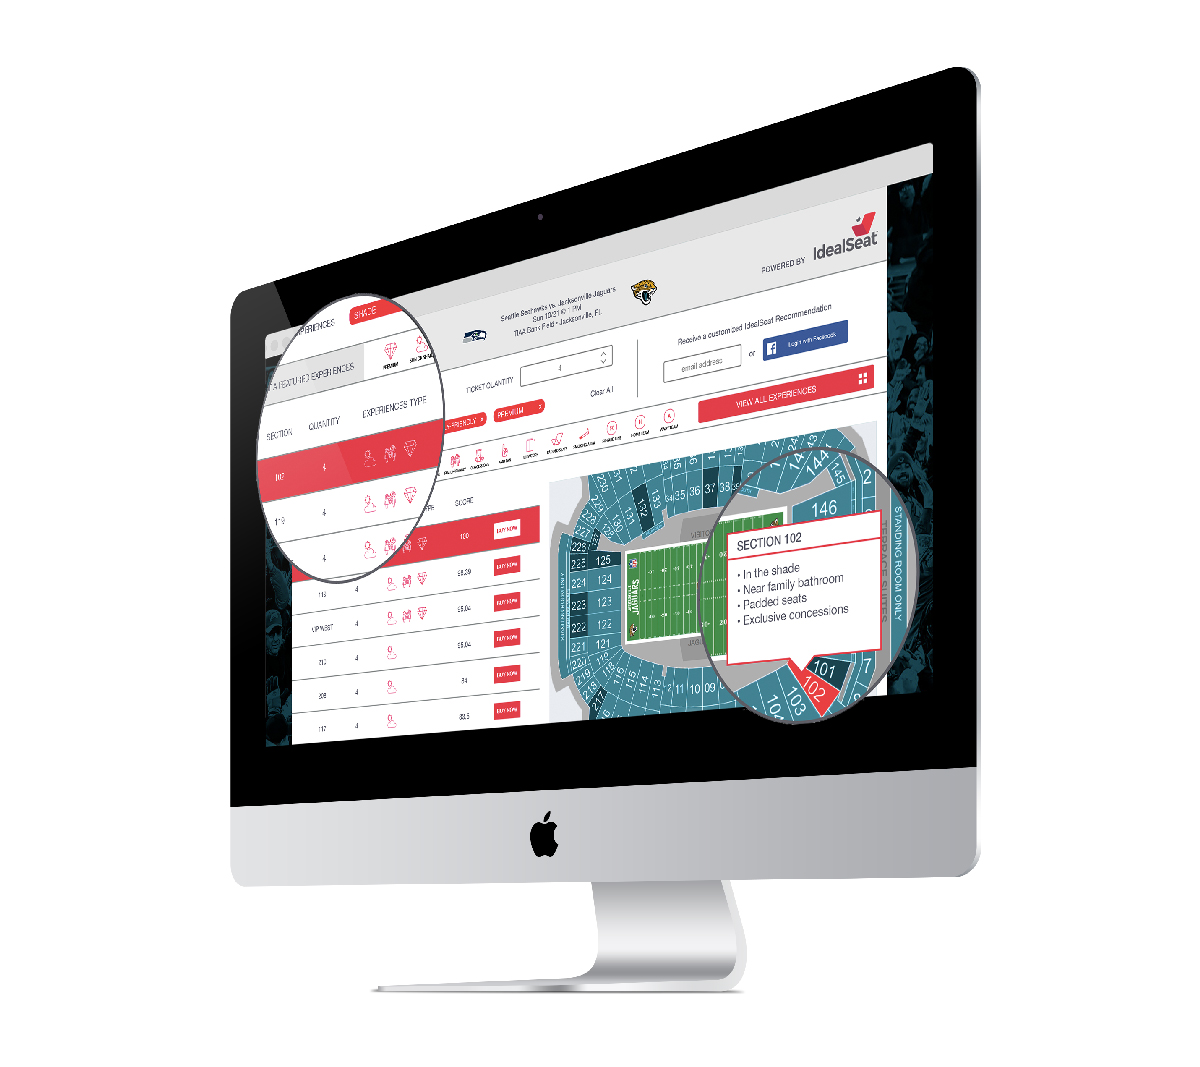 IdealSeat is a data platform that personalizes the purchase process for live event experiences - We provide MLB, NFL, WNBA, NHL, and NCAA fan experience data to teams, leagues, and leading ticketing companies to increase sales and revenue in this new era of ticketing.